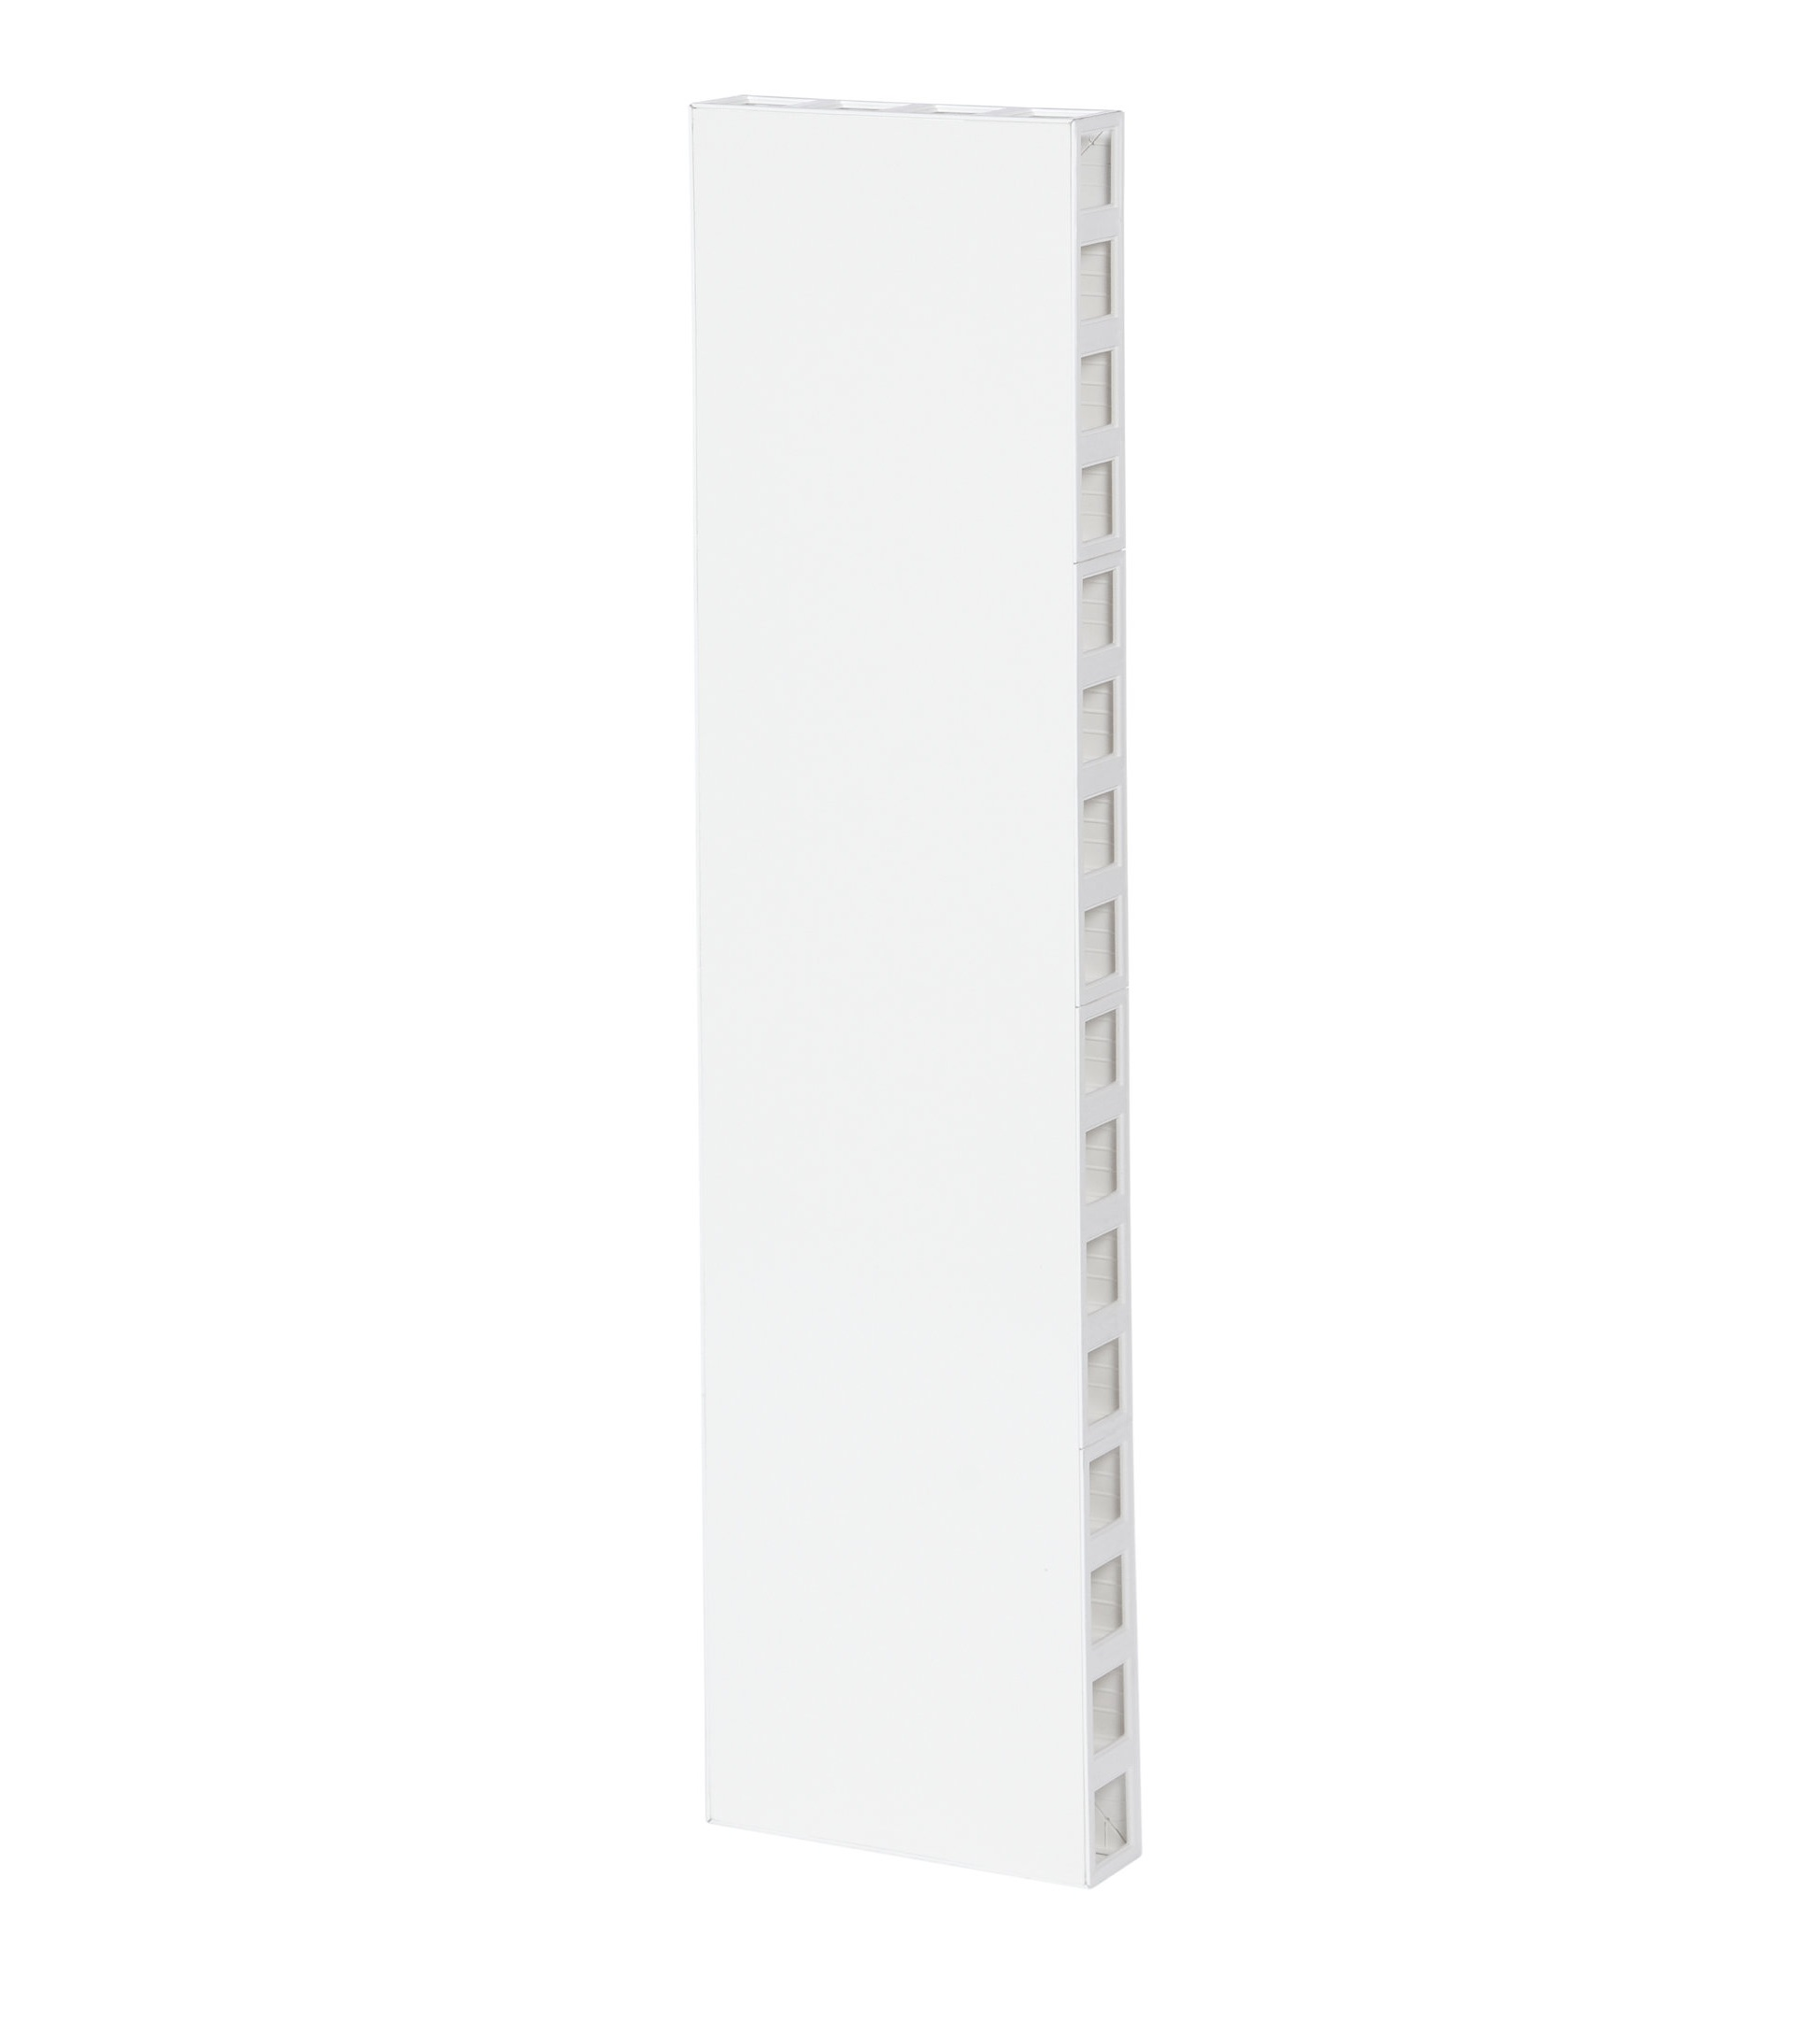 everpanel 1ft x 4ft wall panel